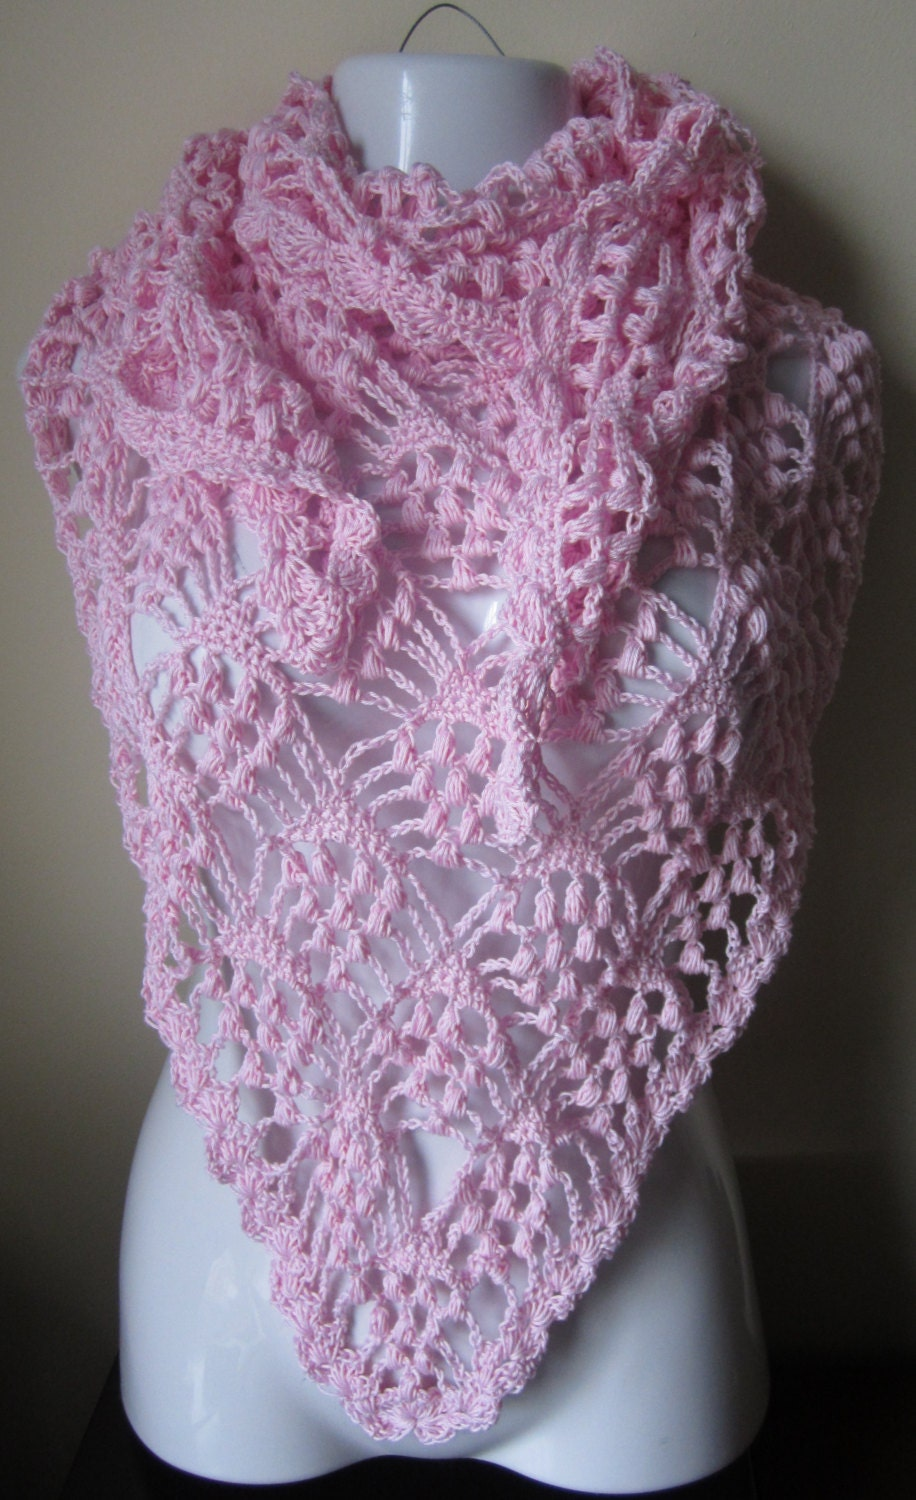 Crochet Triangle Shawl Patterns For Beginners : Items similar to Blush Pink Shawl, Crochet Triangle lace ...